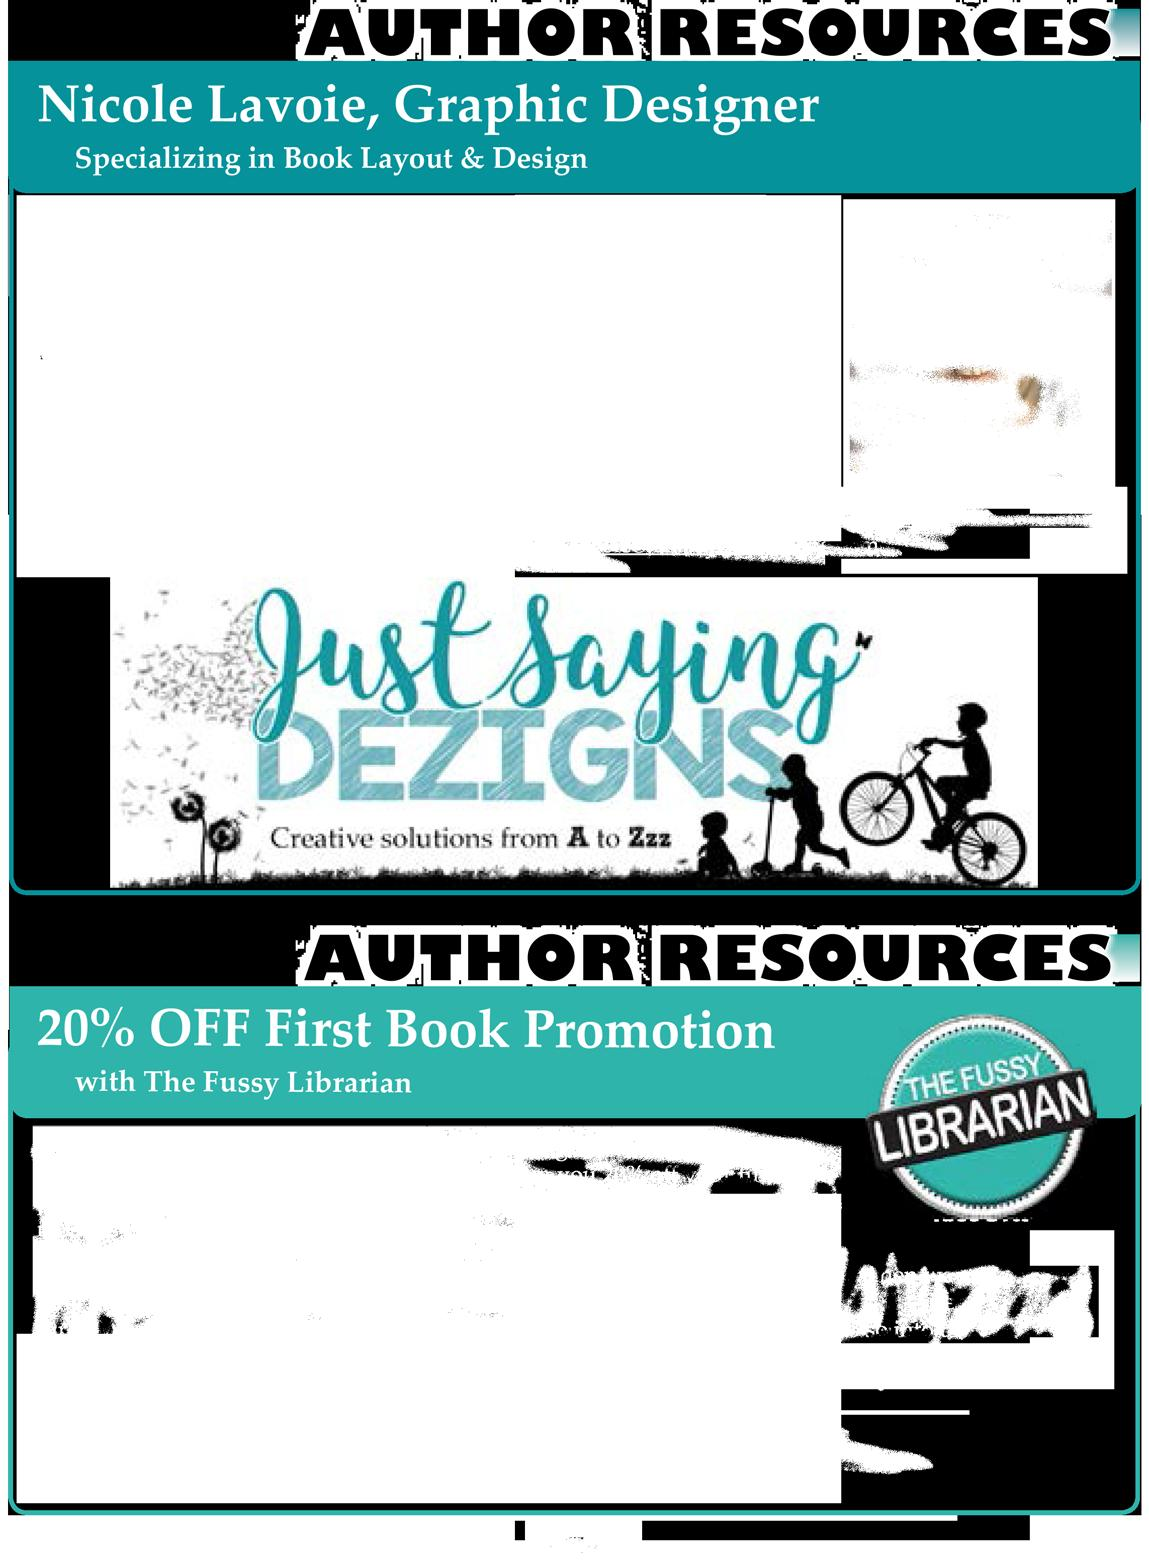 Page 16 of 20% OFF First Book Promotion with the Fussy Librarian